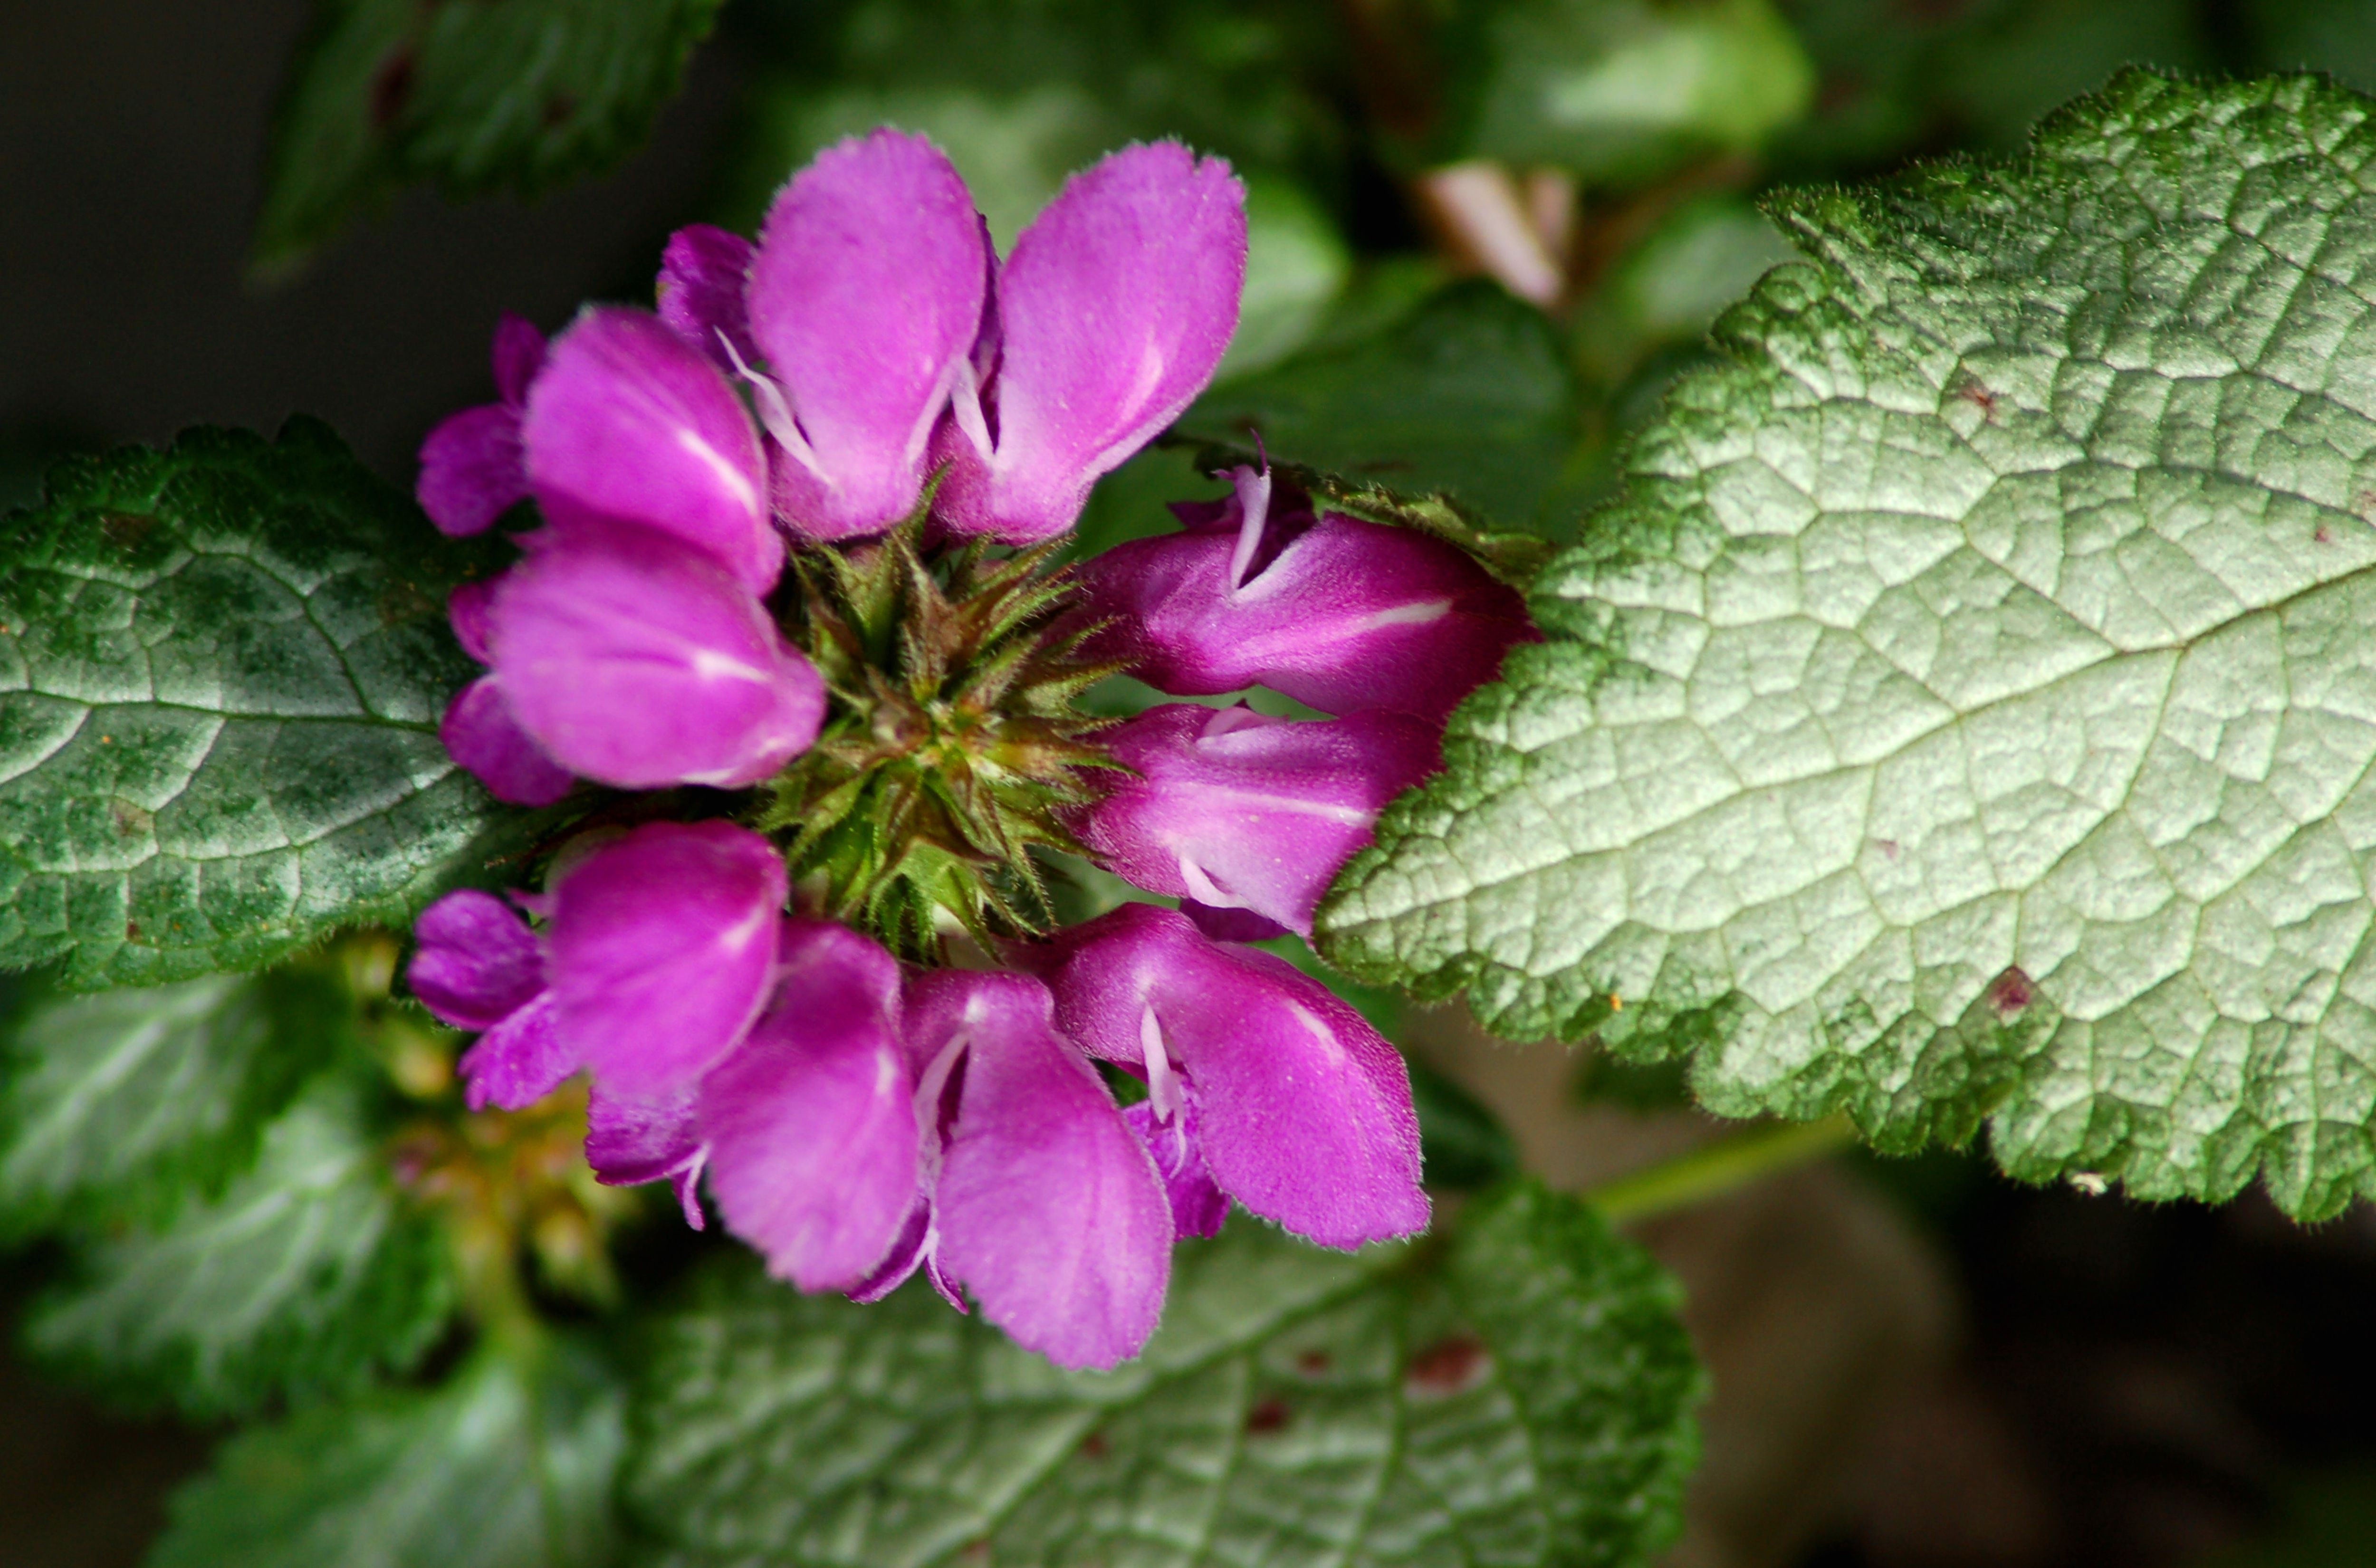 Spotted deadnettle with a pink flower.